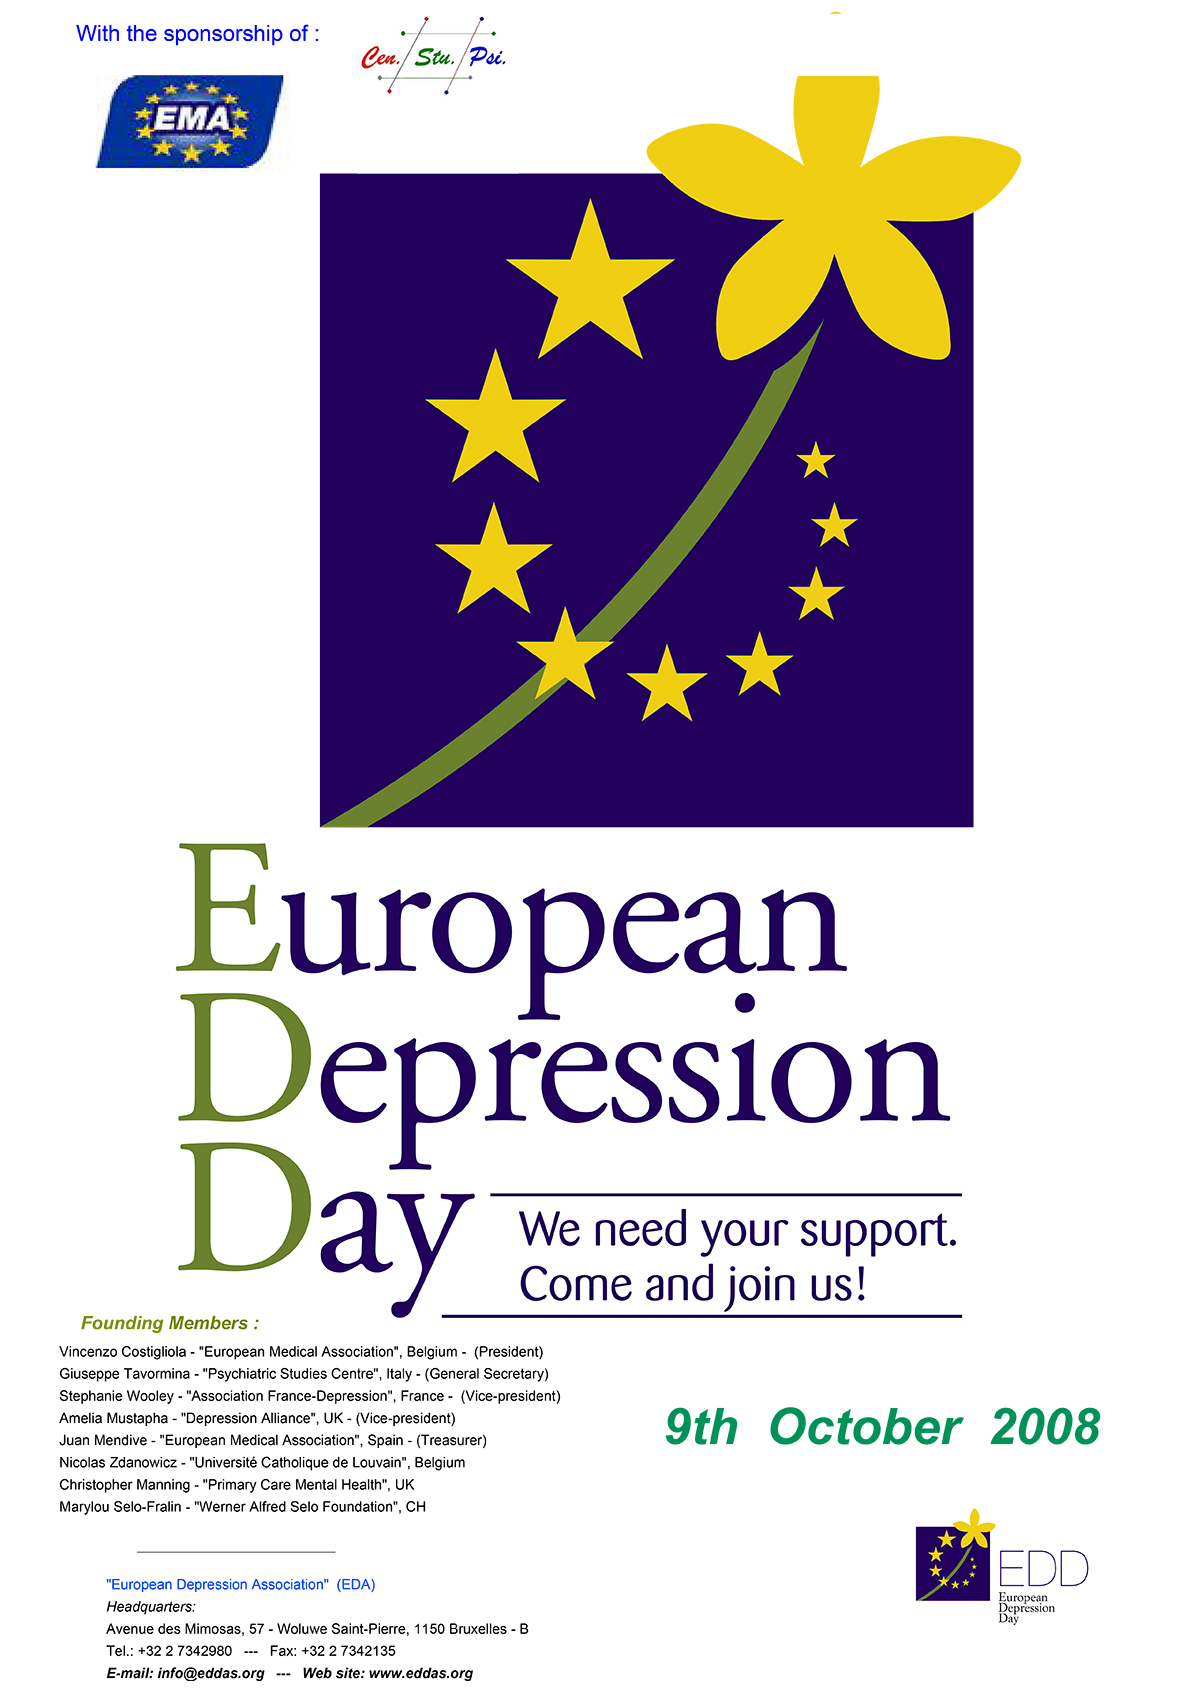 European Depression Day 2008